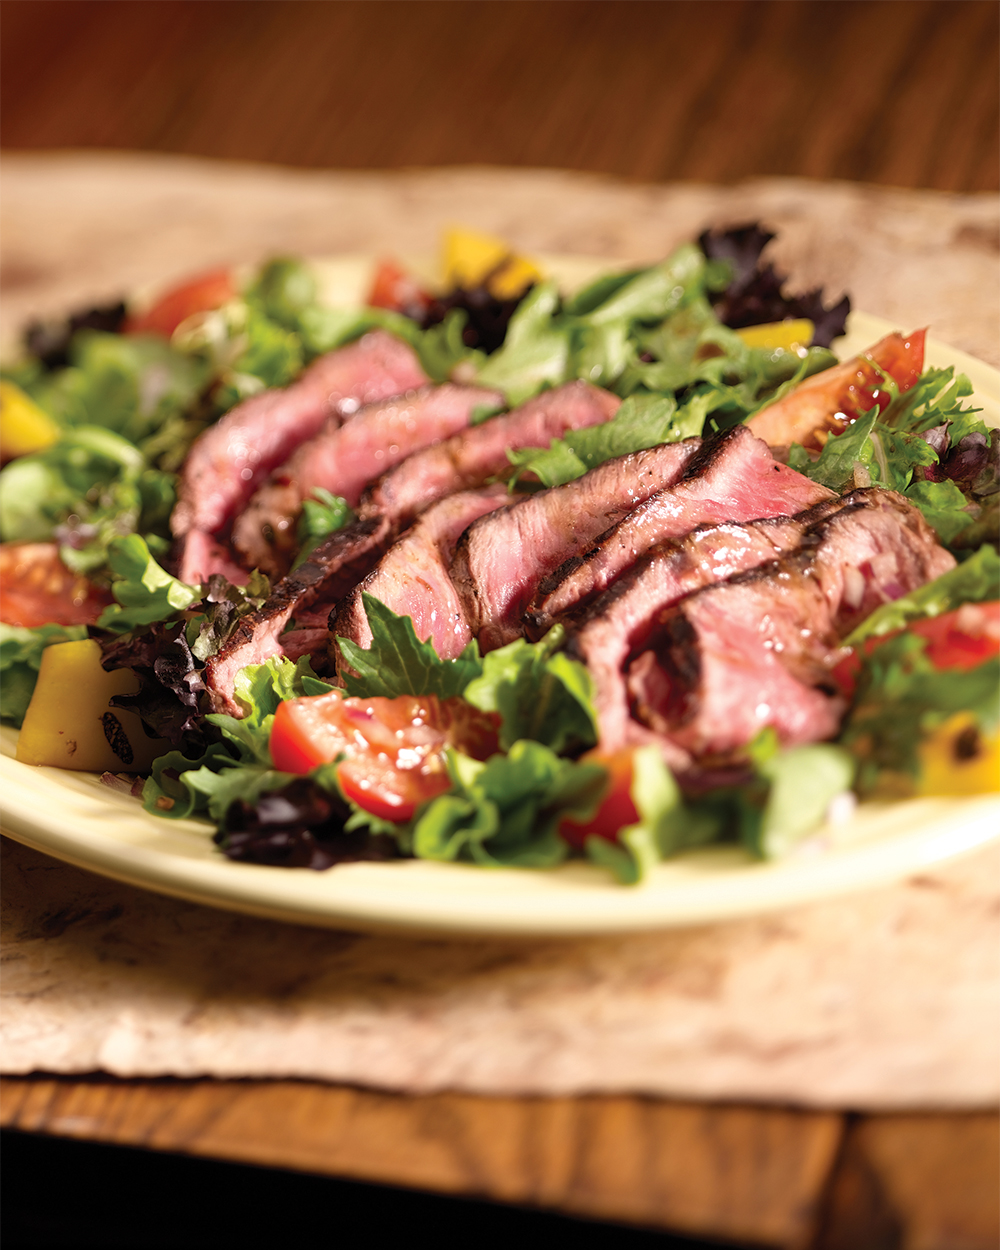 Broiled Skirt Steak with Sugar Snap Pea Salad